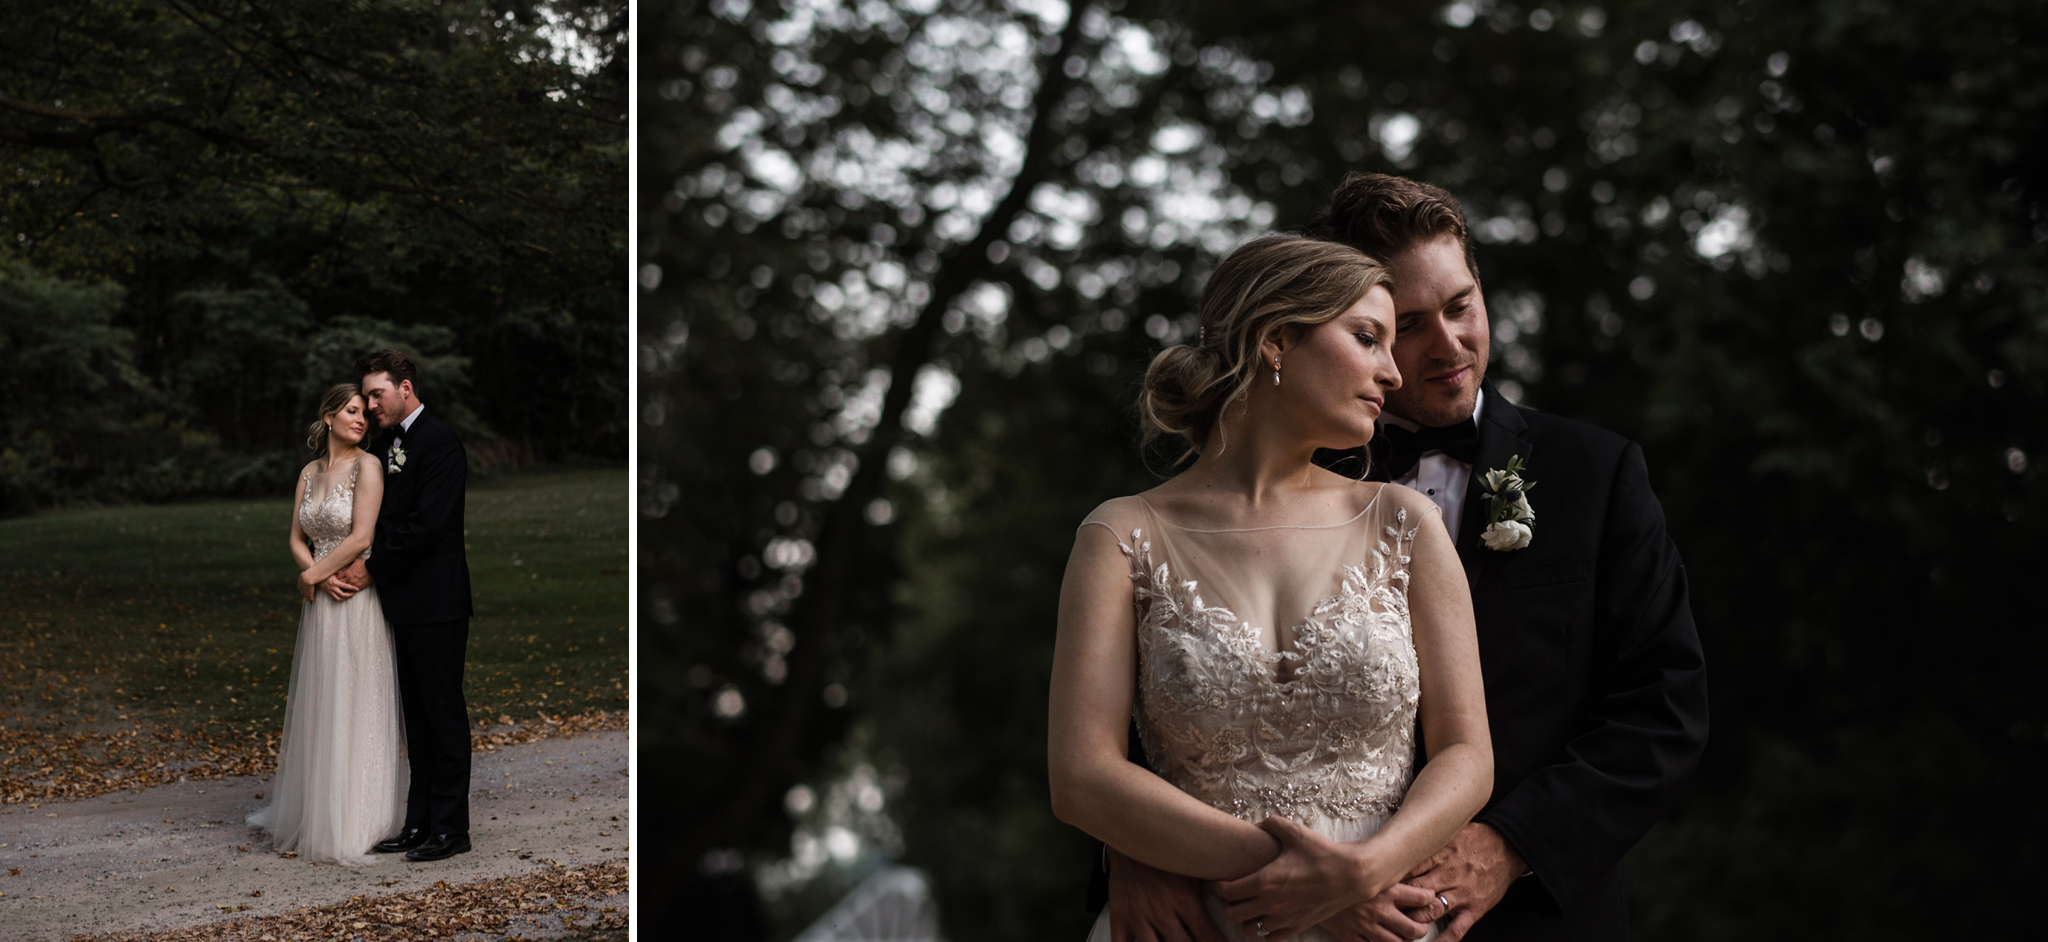 228-elegant-wedding-dress-couple-portraits-penryn-park-toronto-photographer.jpg